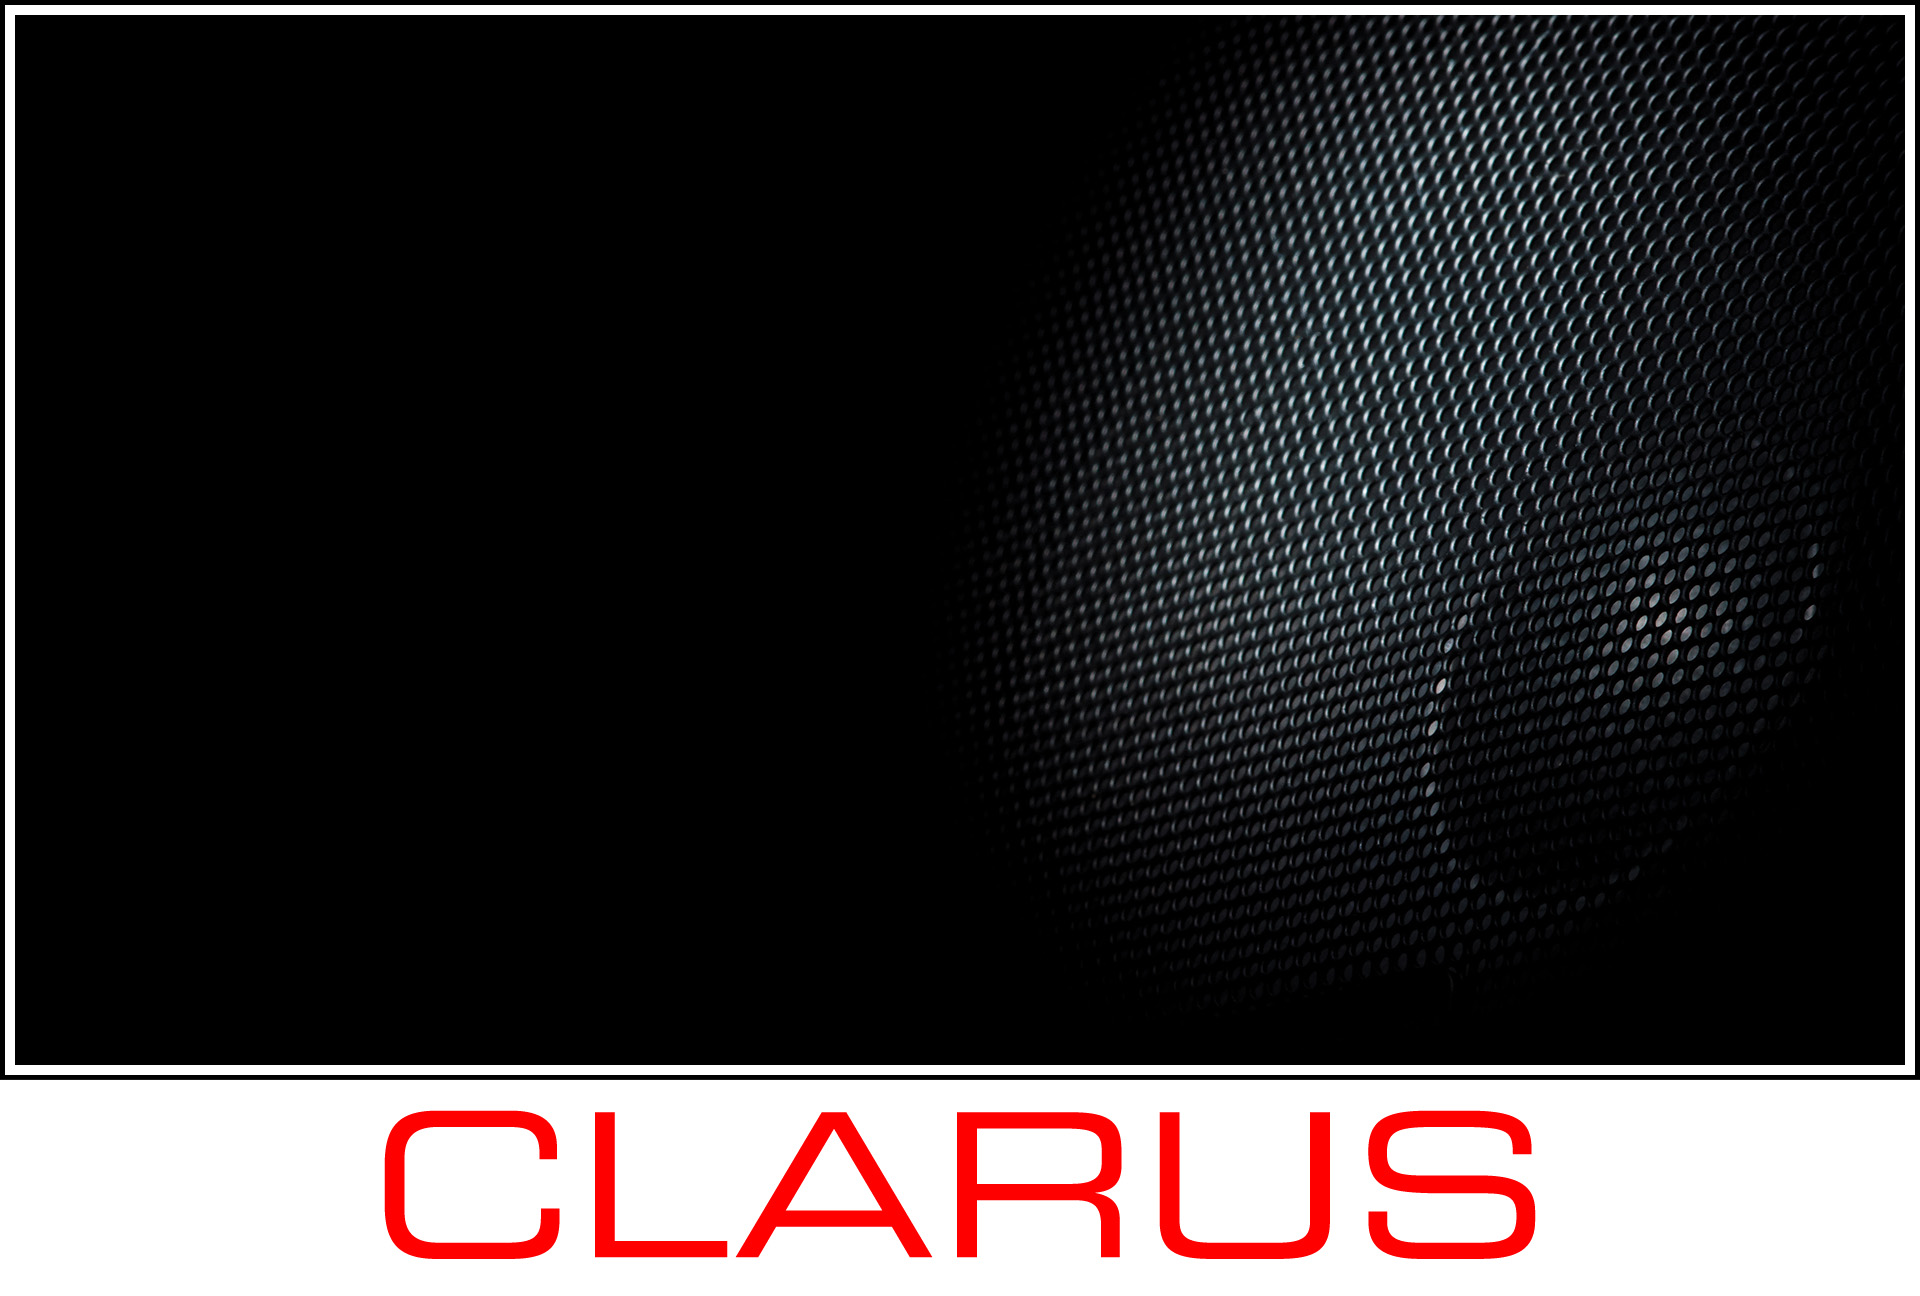 Clarus Joins The Ranks Of Winningest Brand In Organized Sound Quality Compeion Since Hybrid Audio Technologies Inception And Was Reviewed By Car